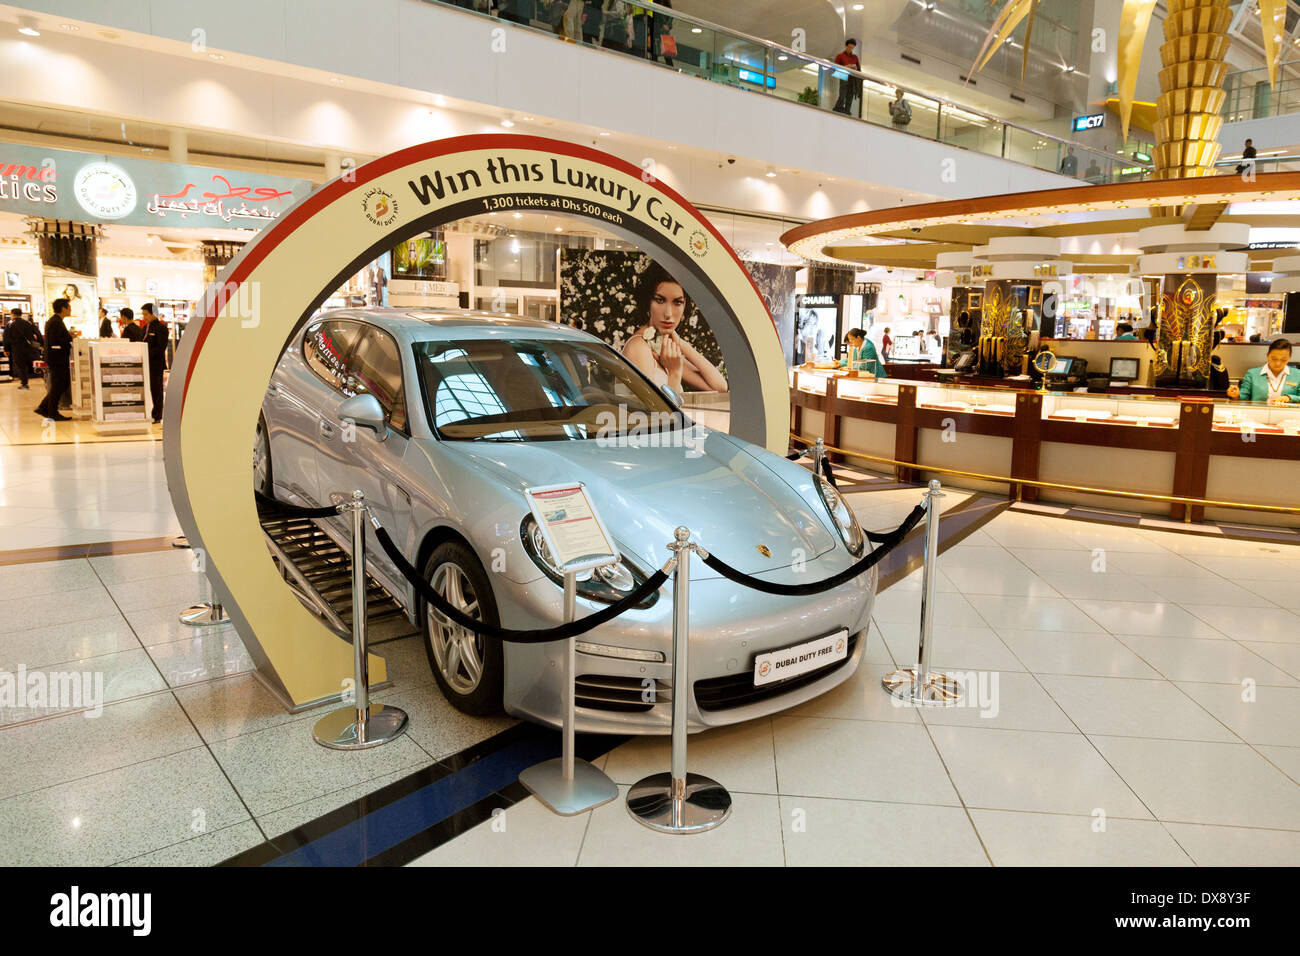 A Luxury Car Prize To Be Won In A Lottery At Dubai Airport Terminal